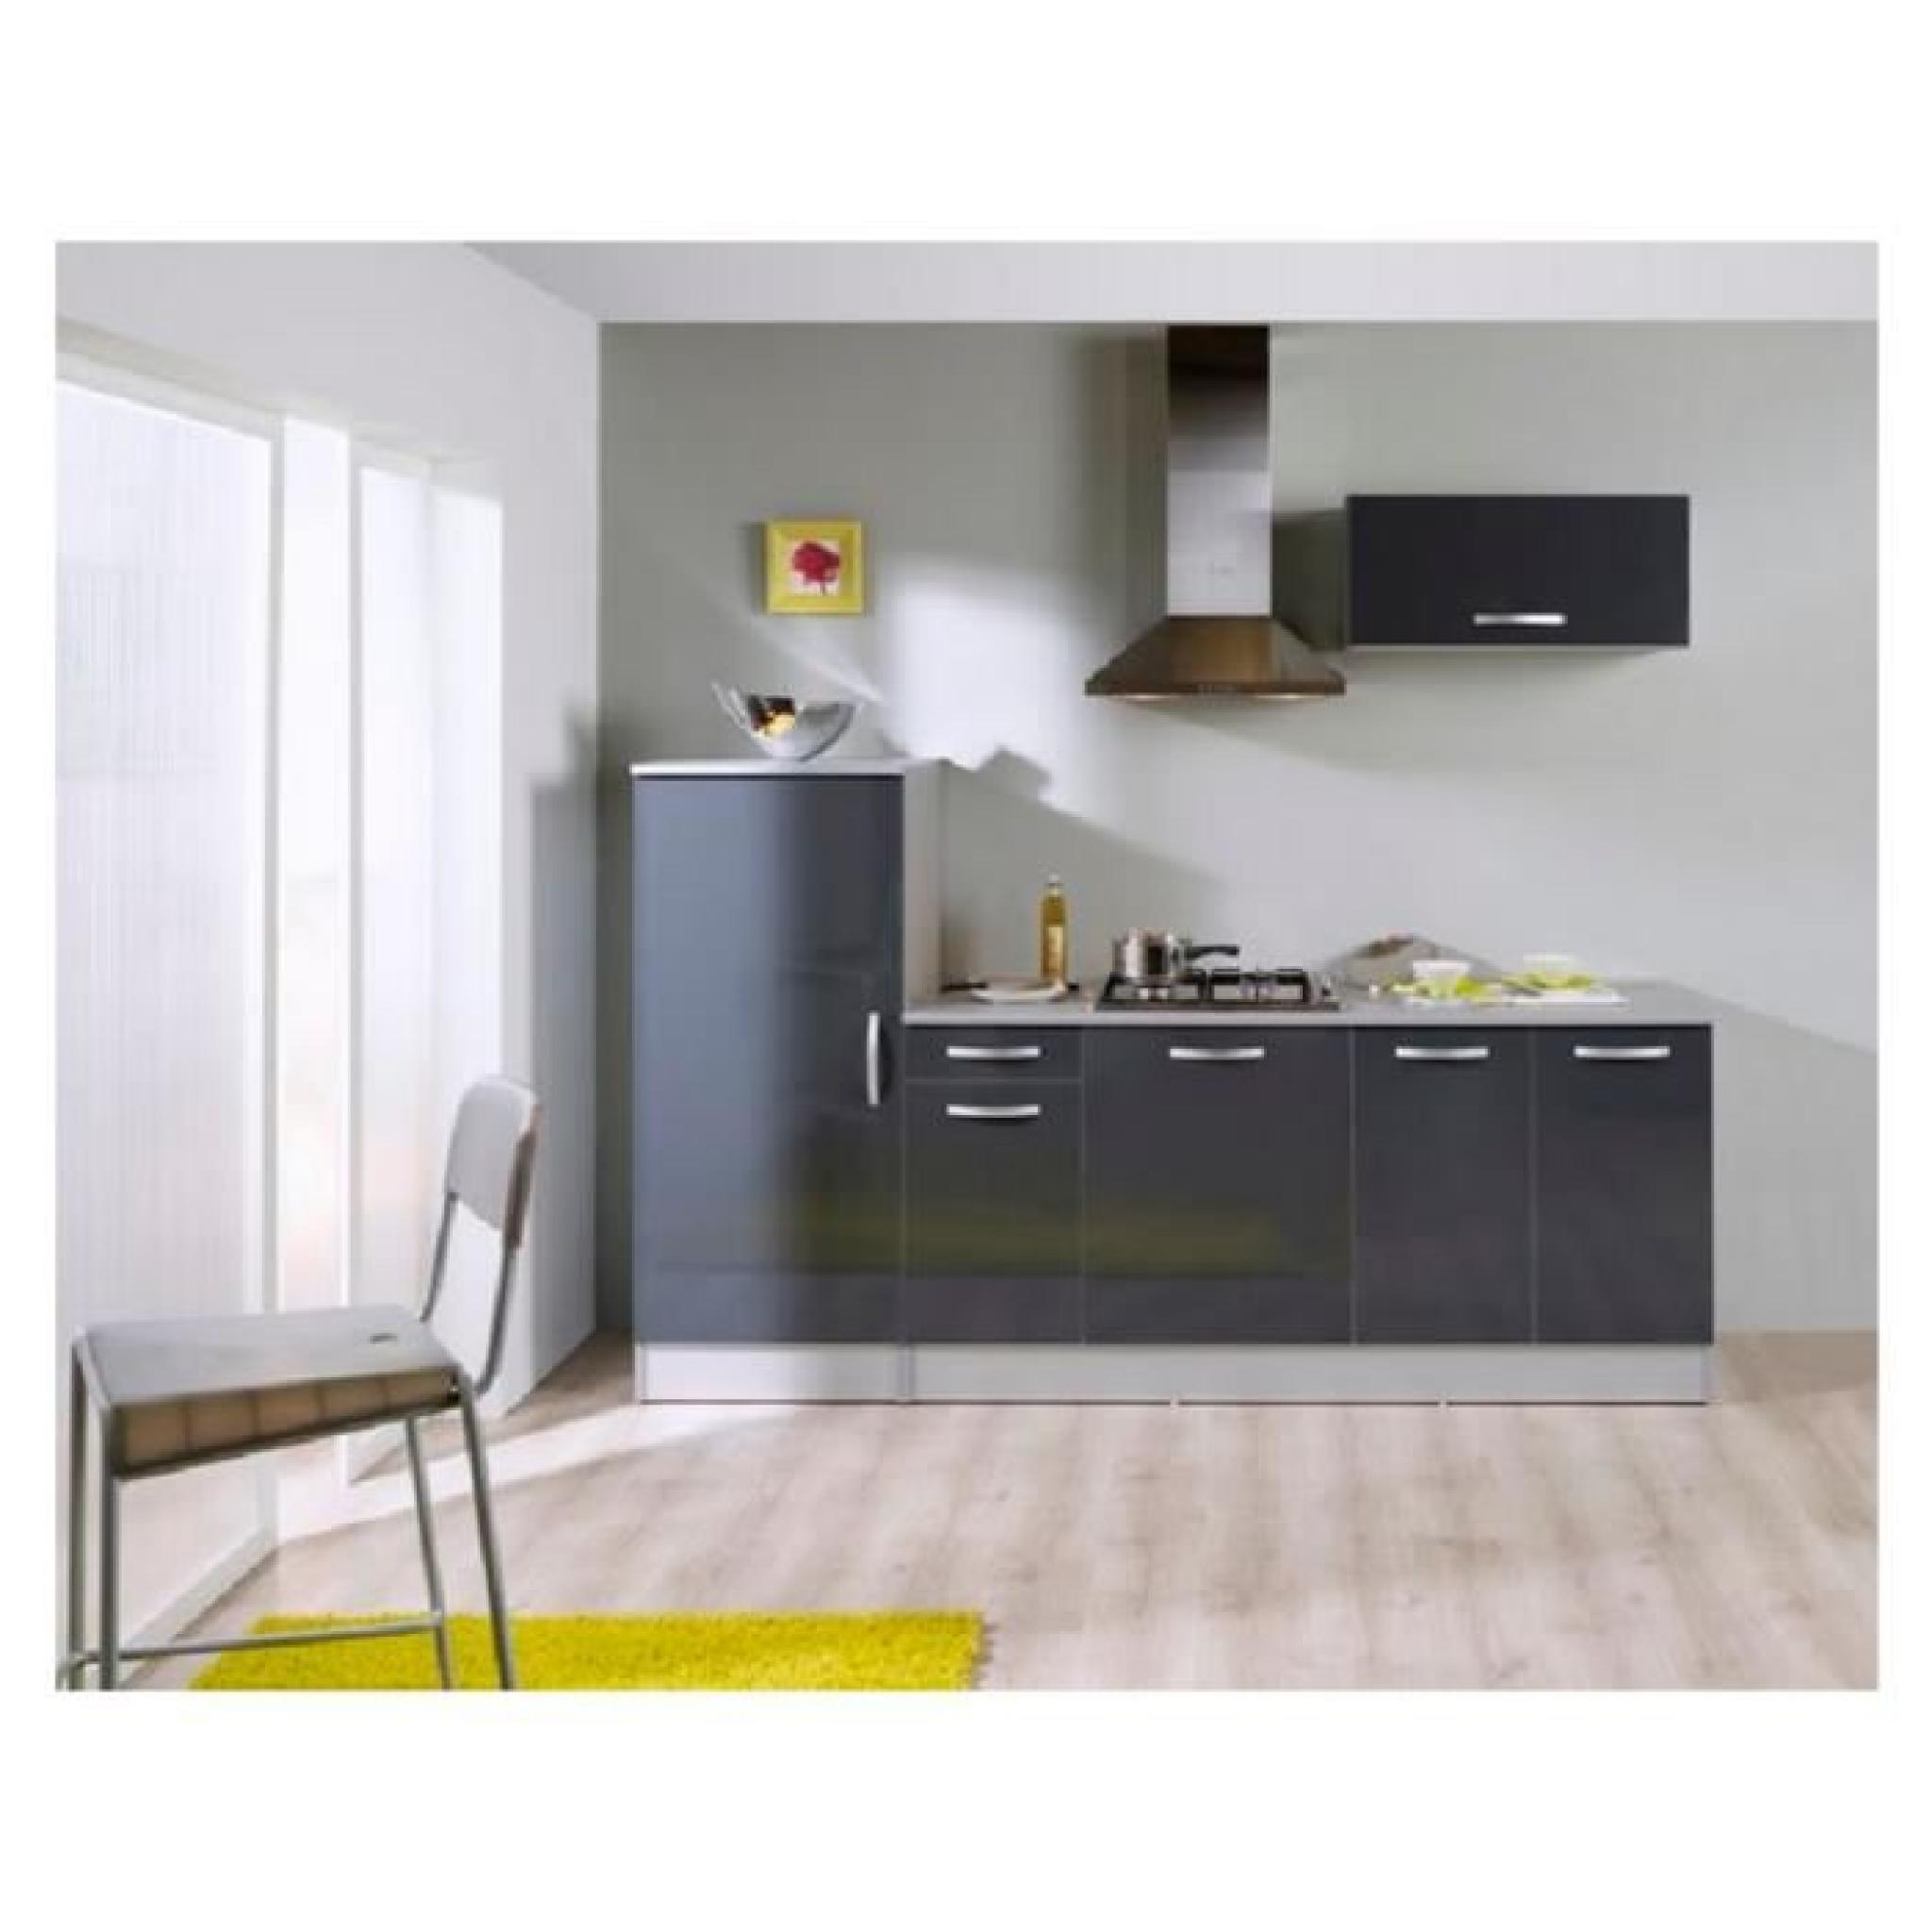 pack cuisine 3 meubles adeline gris brillant achat vente cuisine complete pas cher couleur. Black Bedroom Furniture Sets. Home Design Ideas